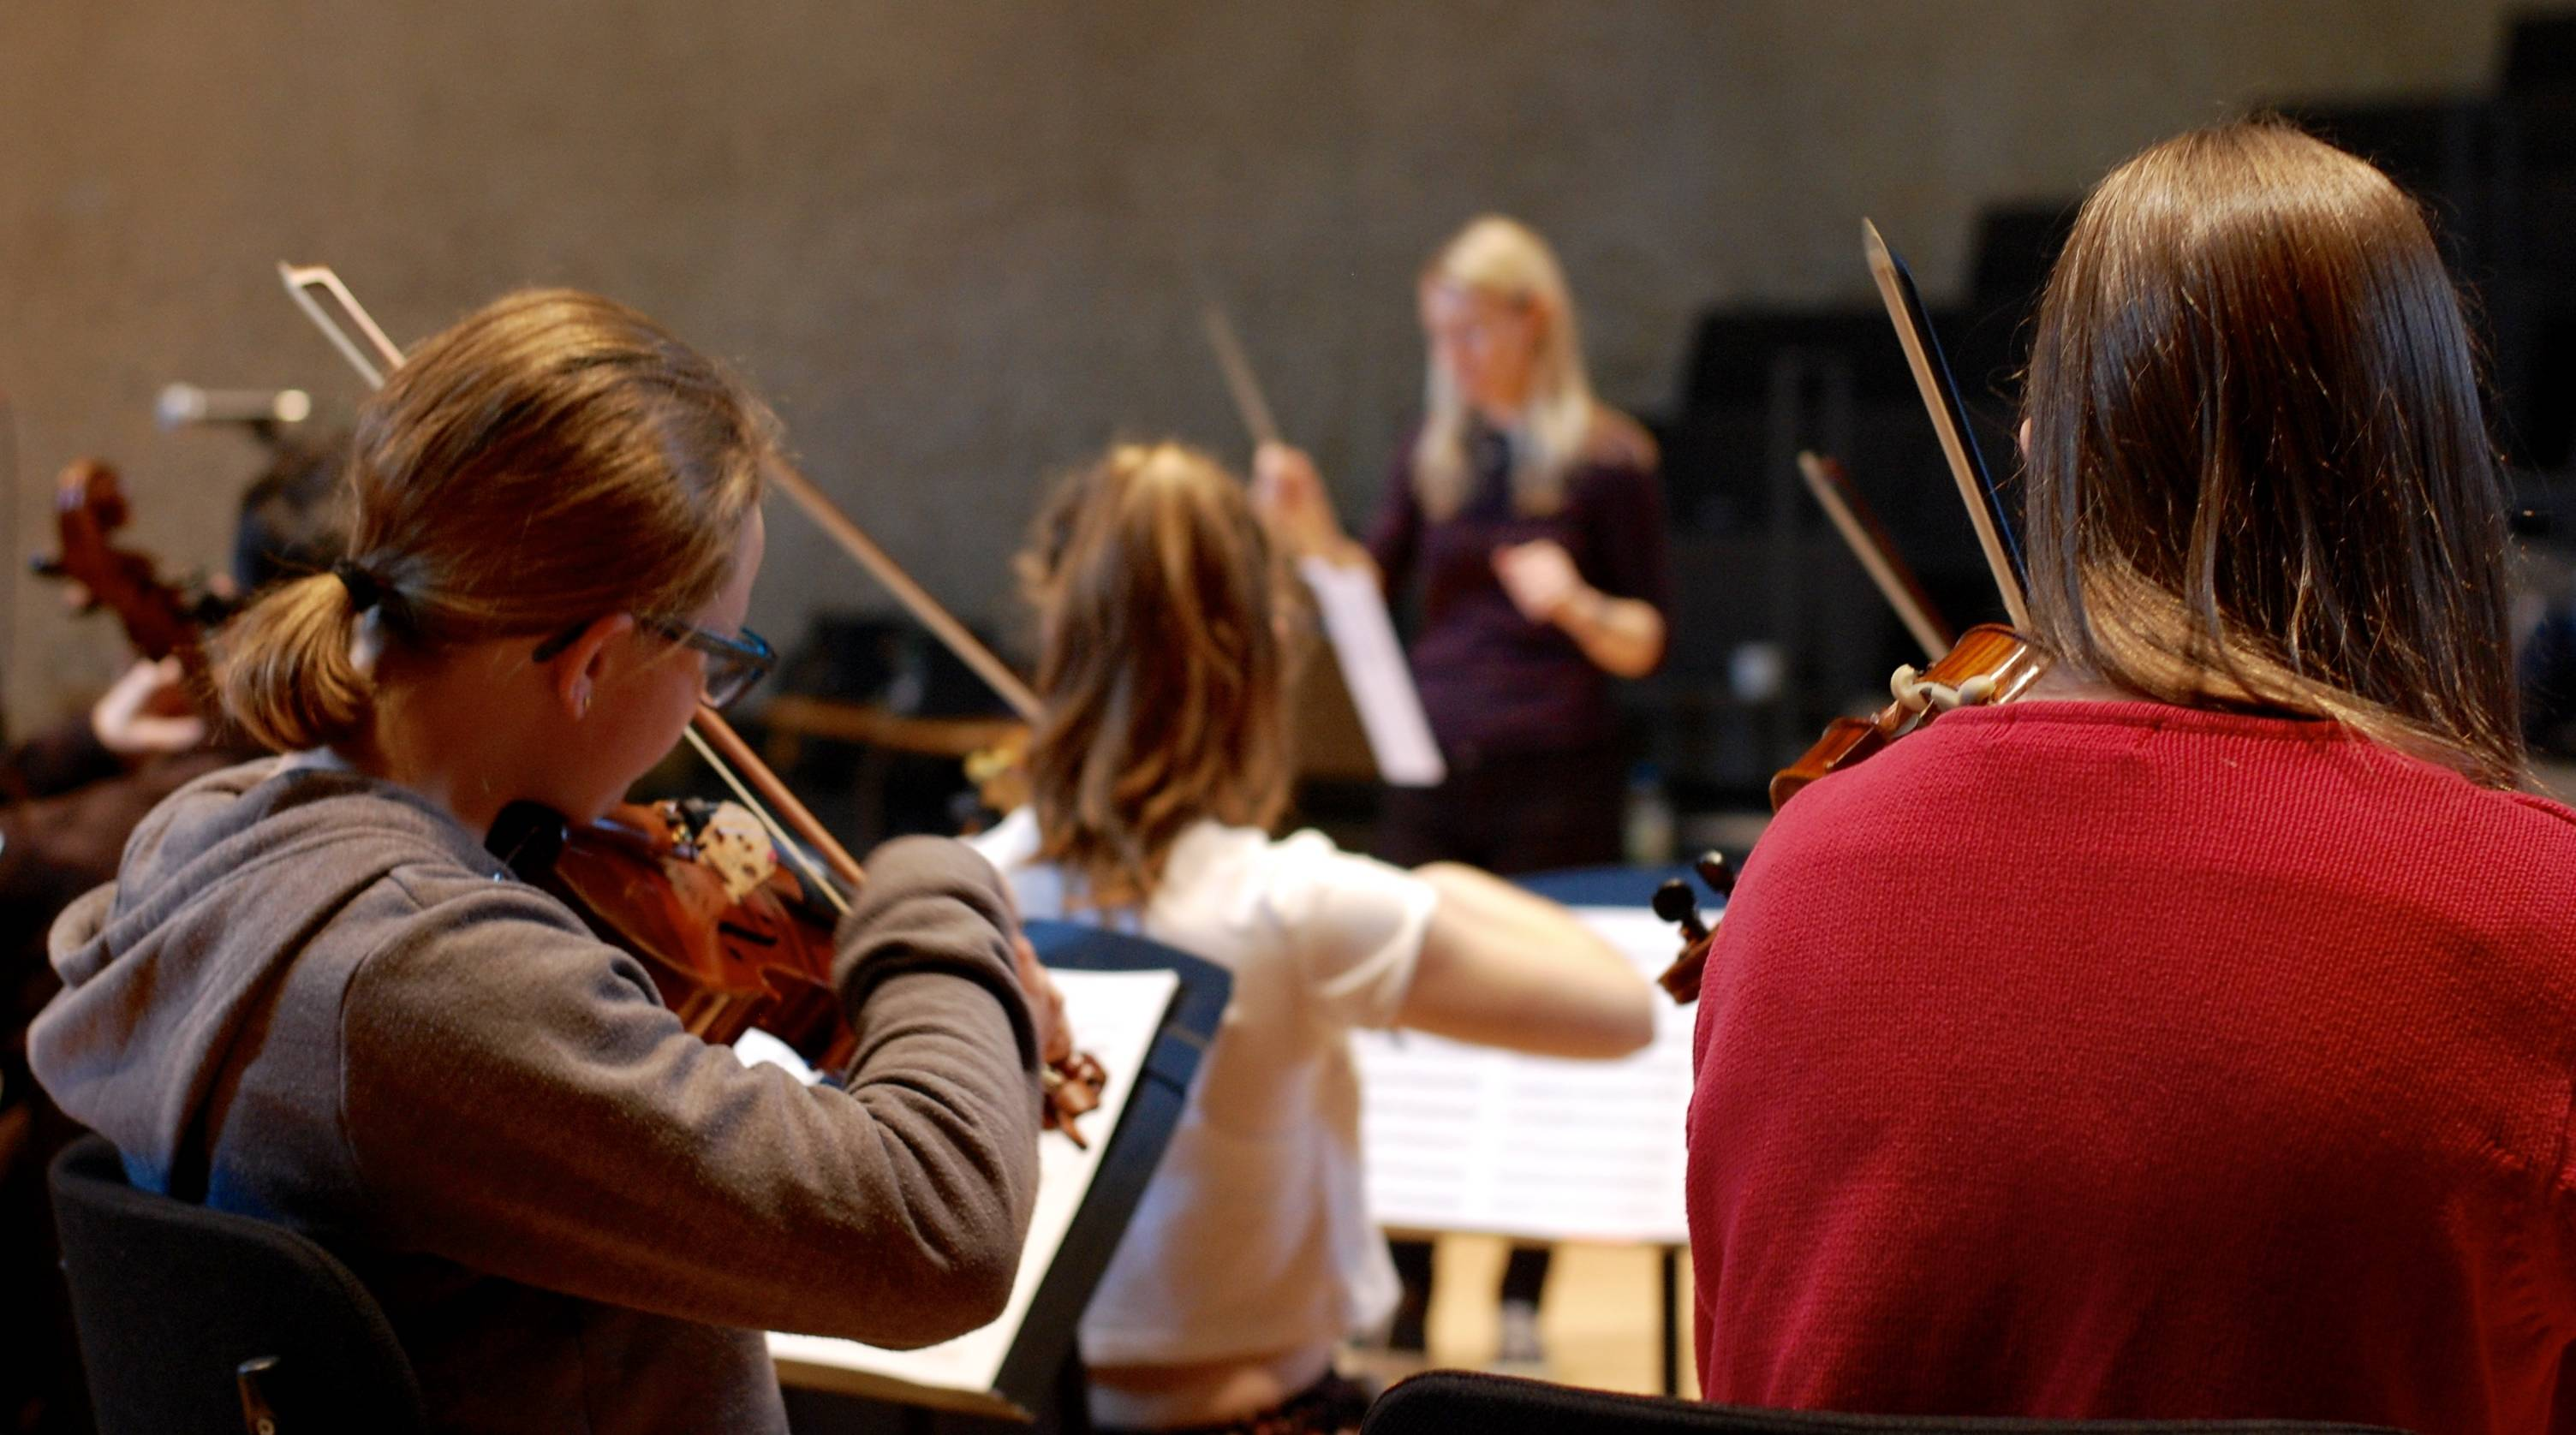 aym-sessions-orchestra-residency_26621896677_o